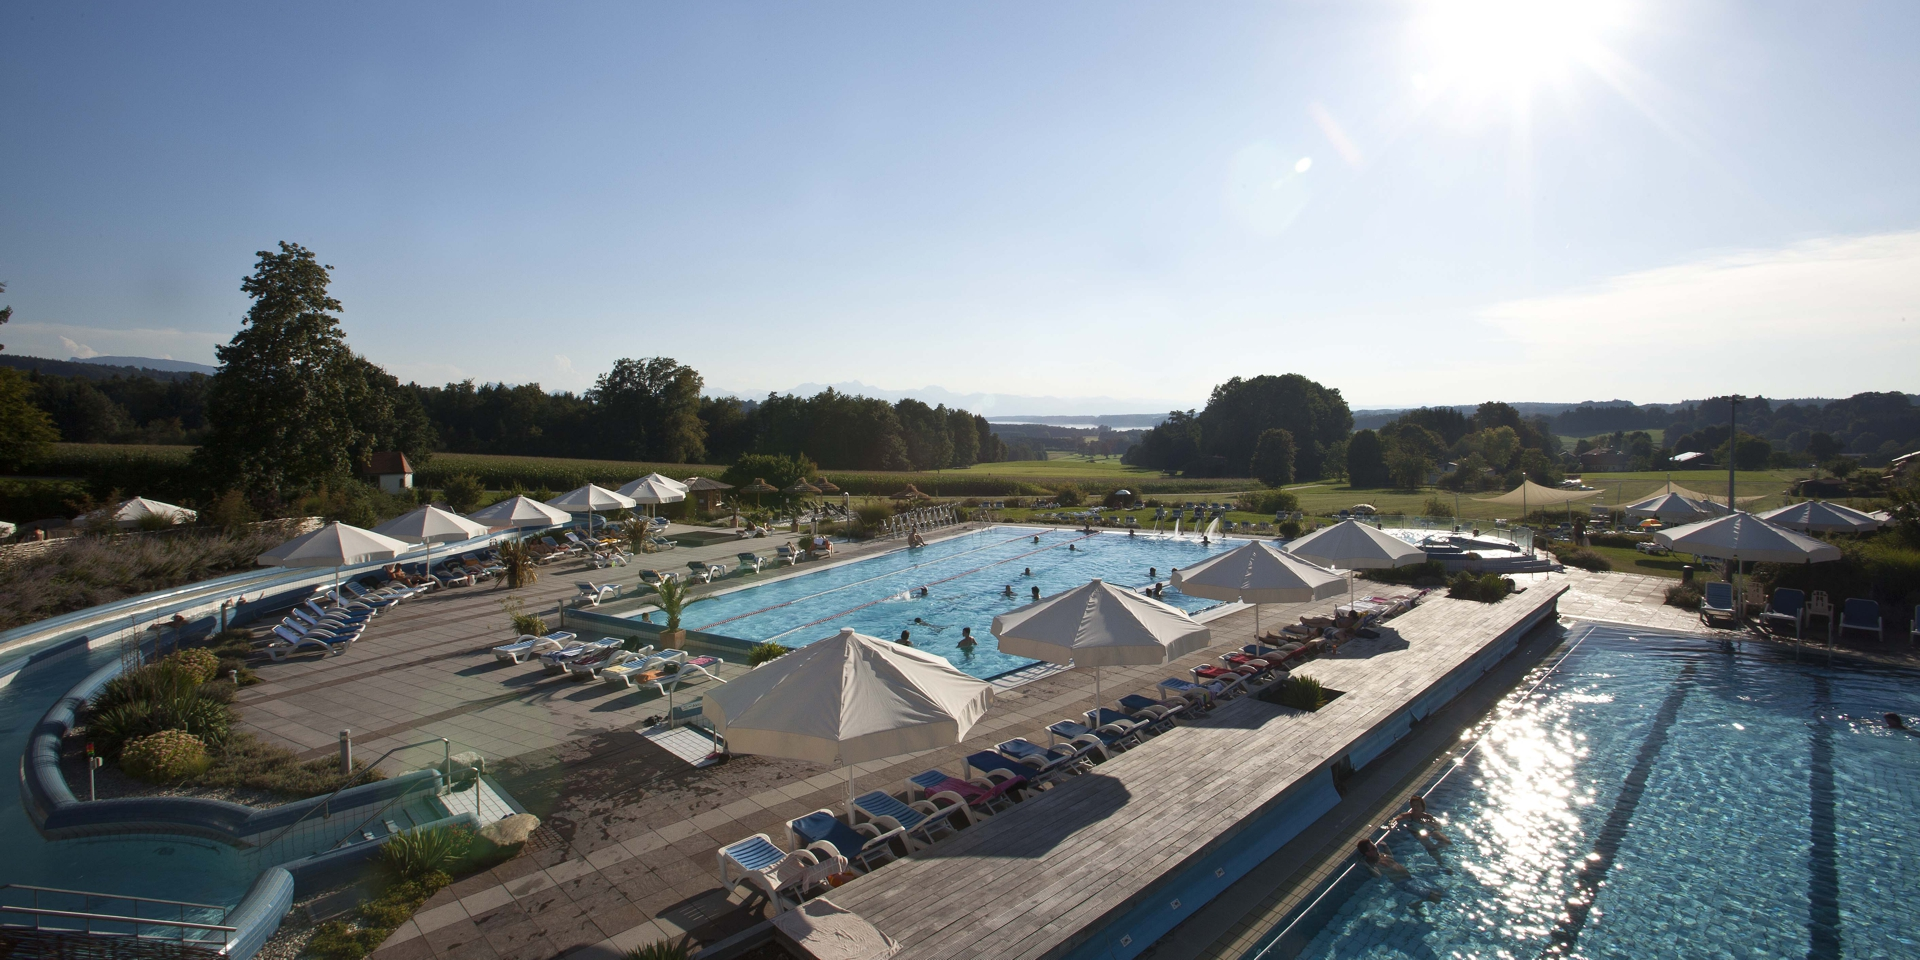 The 4 star hotel directly next to the Chiemgau Thermen